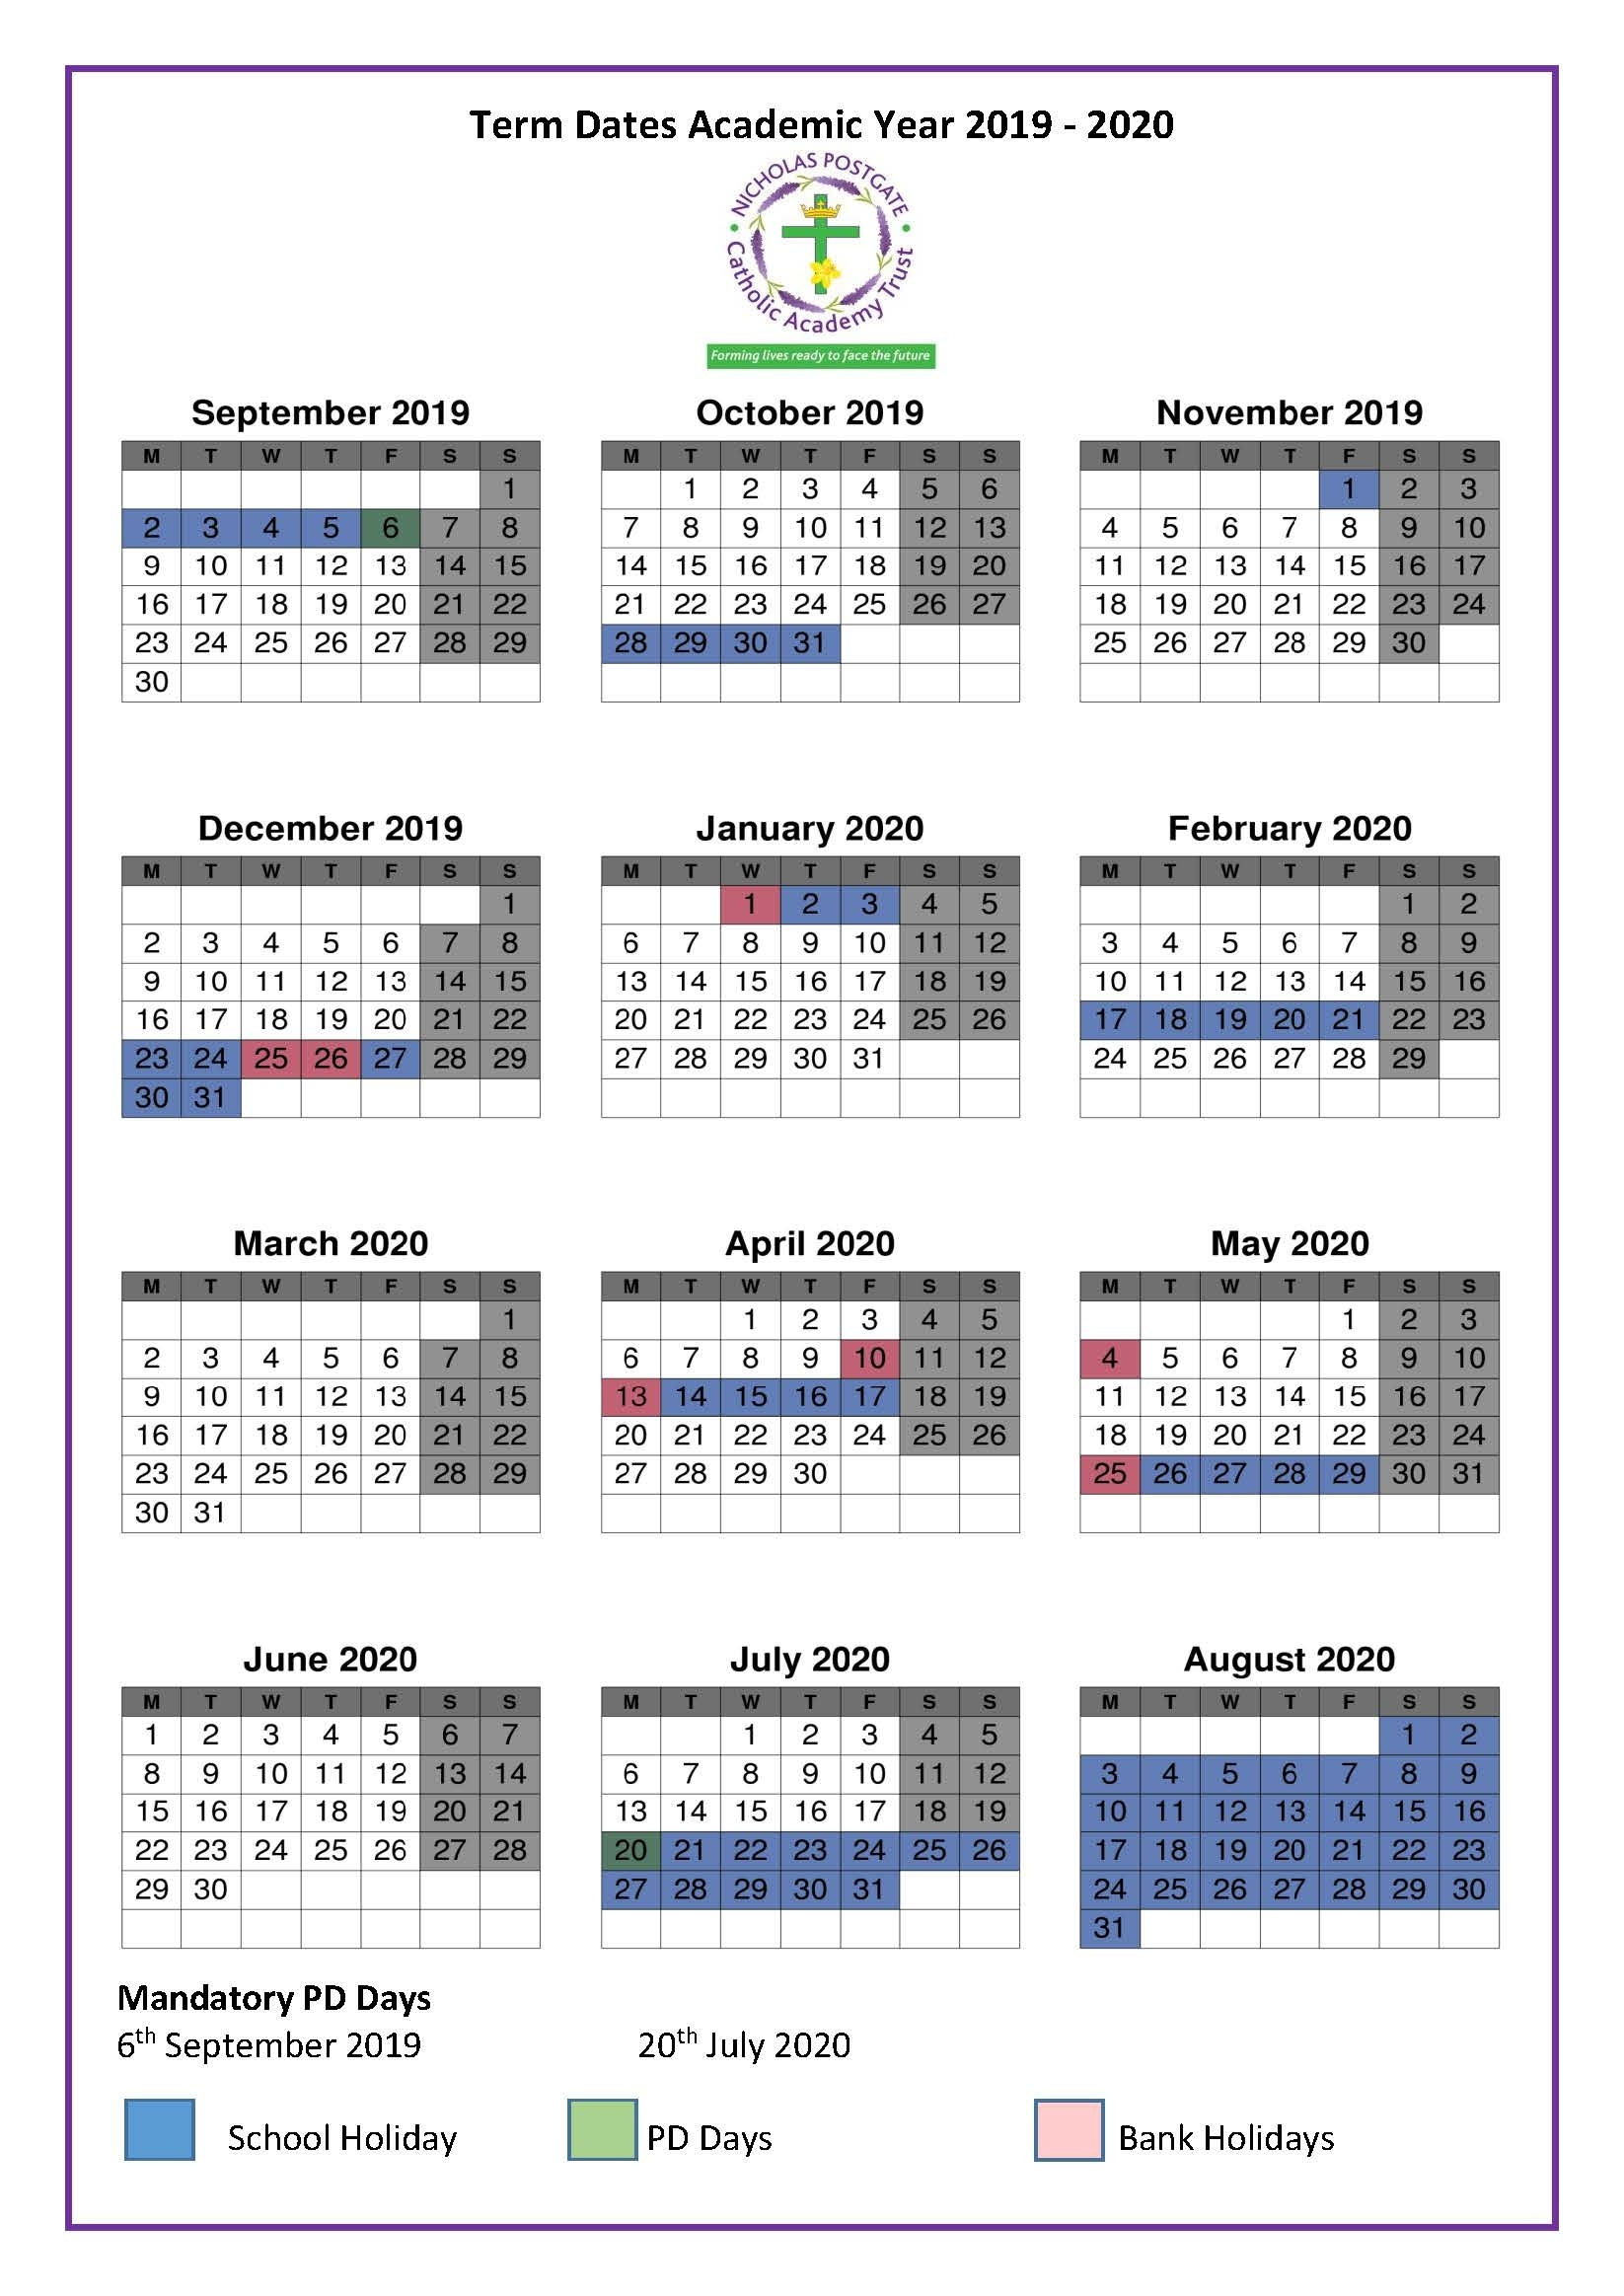 Term Dates 2019-2020 | St. Edward's Catholic Primary School within Pshe Special Days Calendar 2019/2020